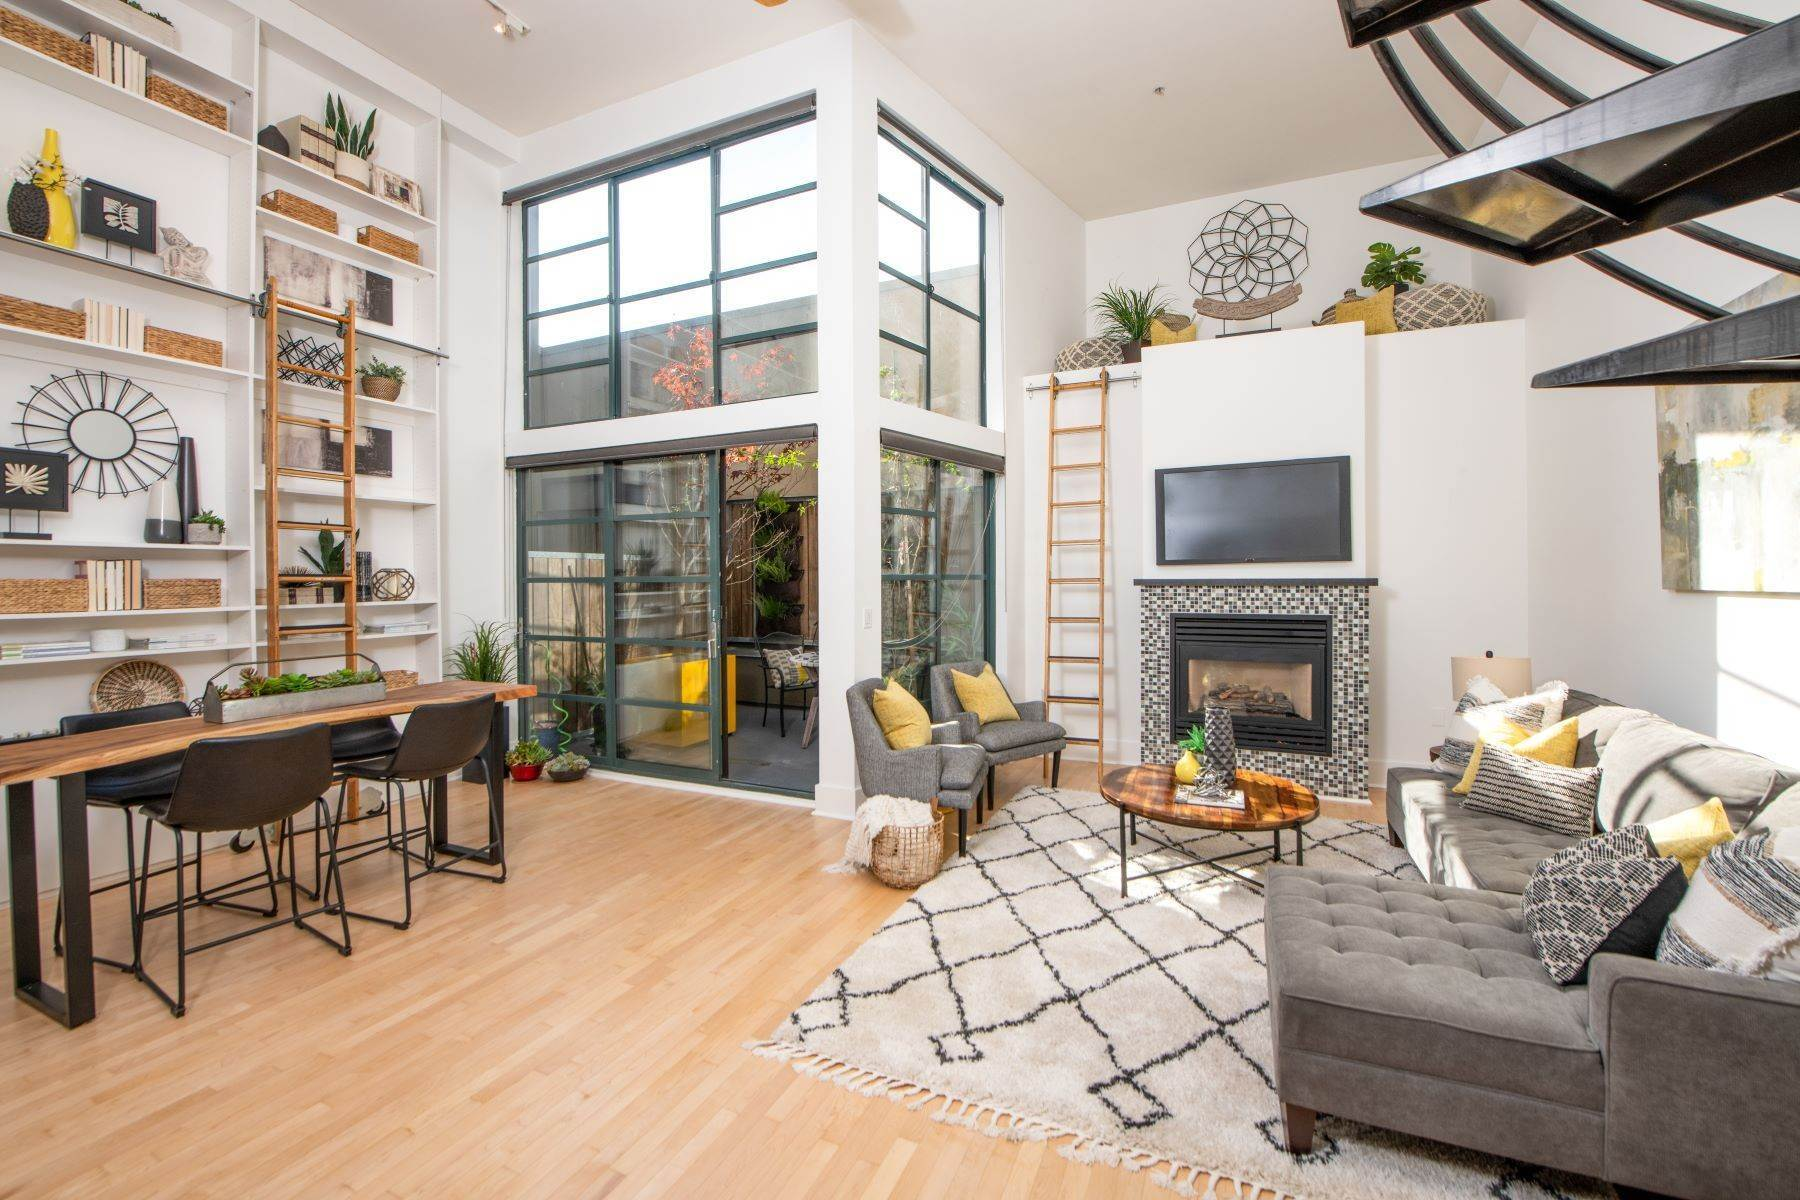 Condominiums at High Ceilings with Epic Two-Story Windows Will Take Your Breath Away! 2600 18th Street, #8 San Francisco, California 94110 United States